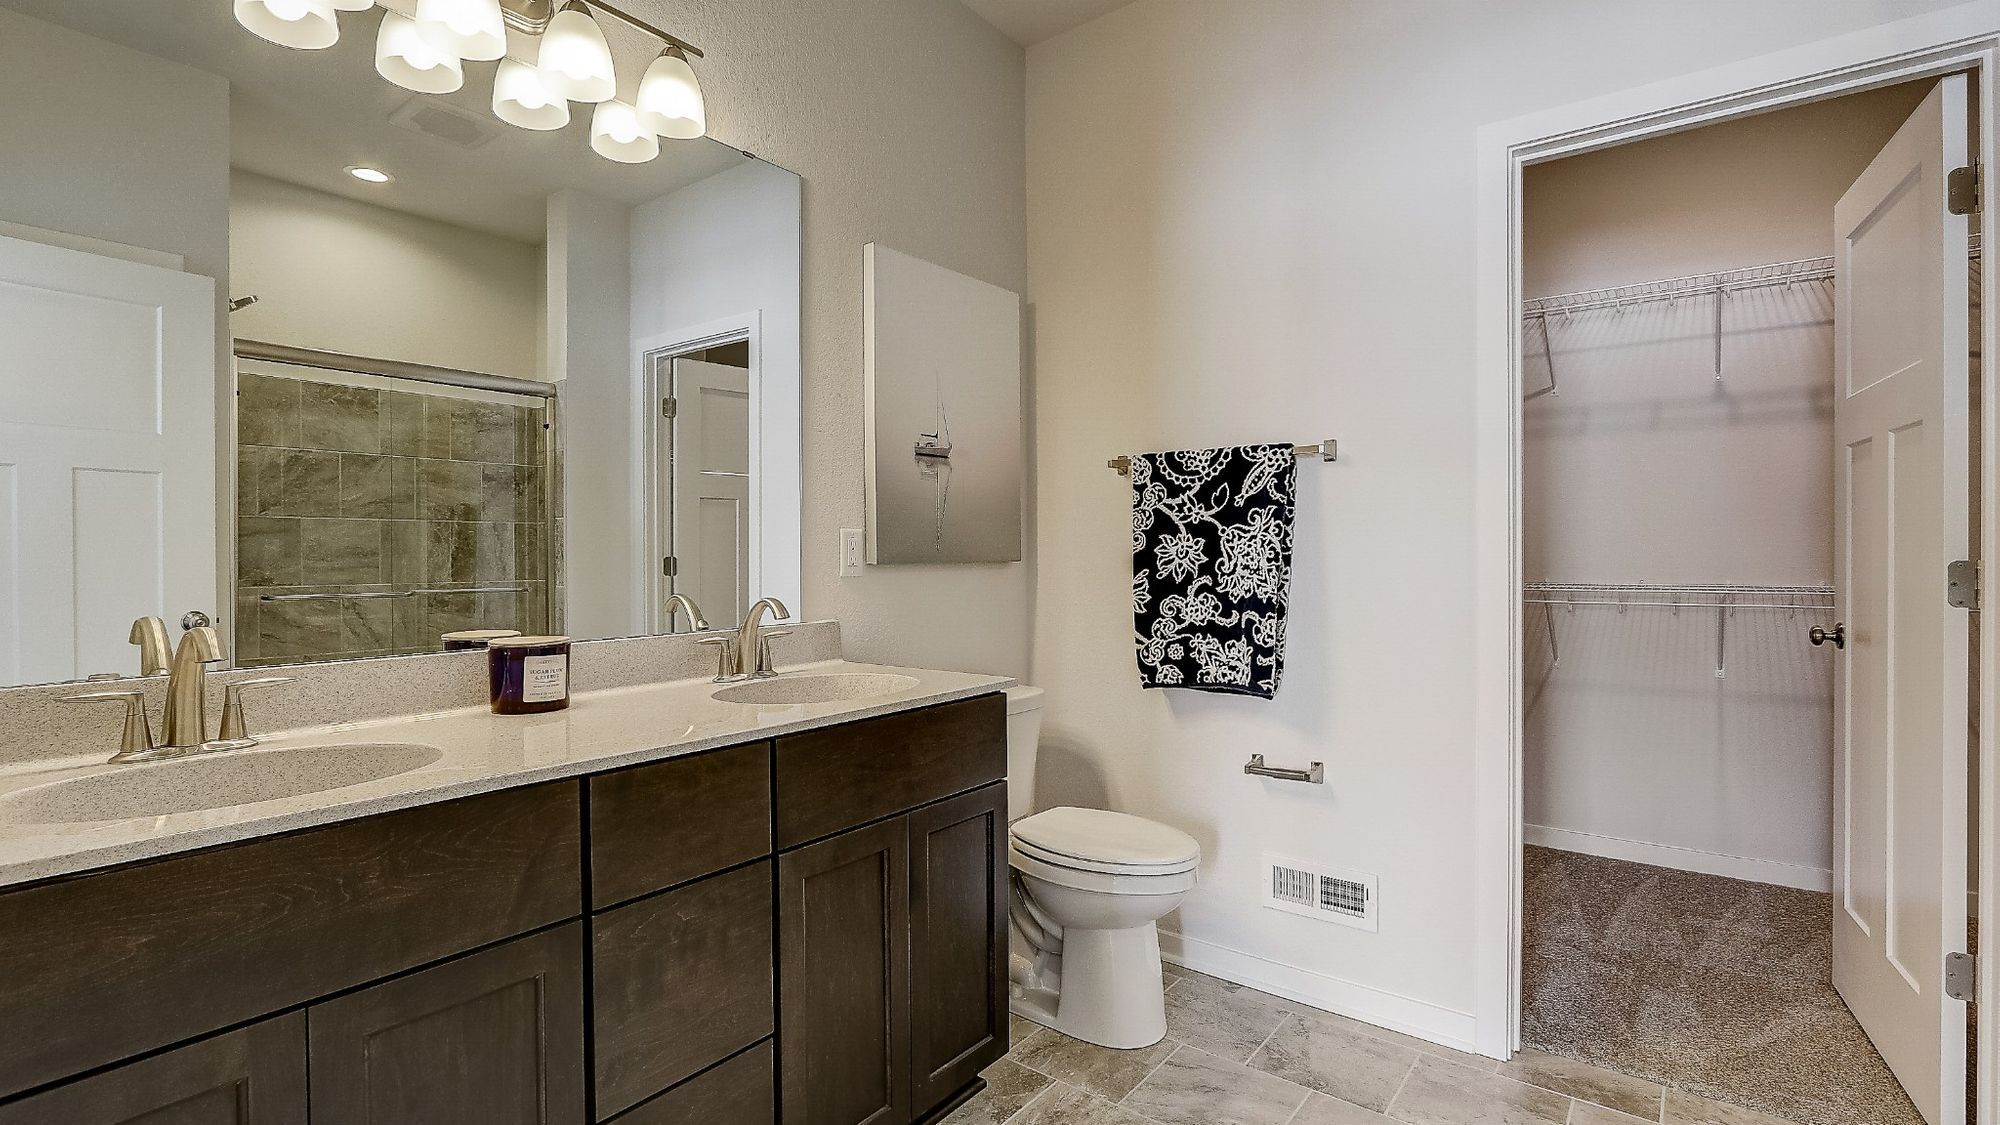 Bathroom featured in The Adrian By Harbor Homes in Washington-Fond du Lac, WI